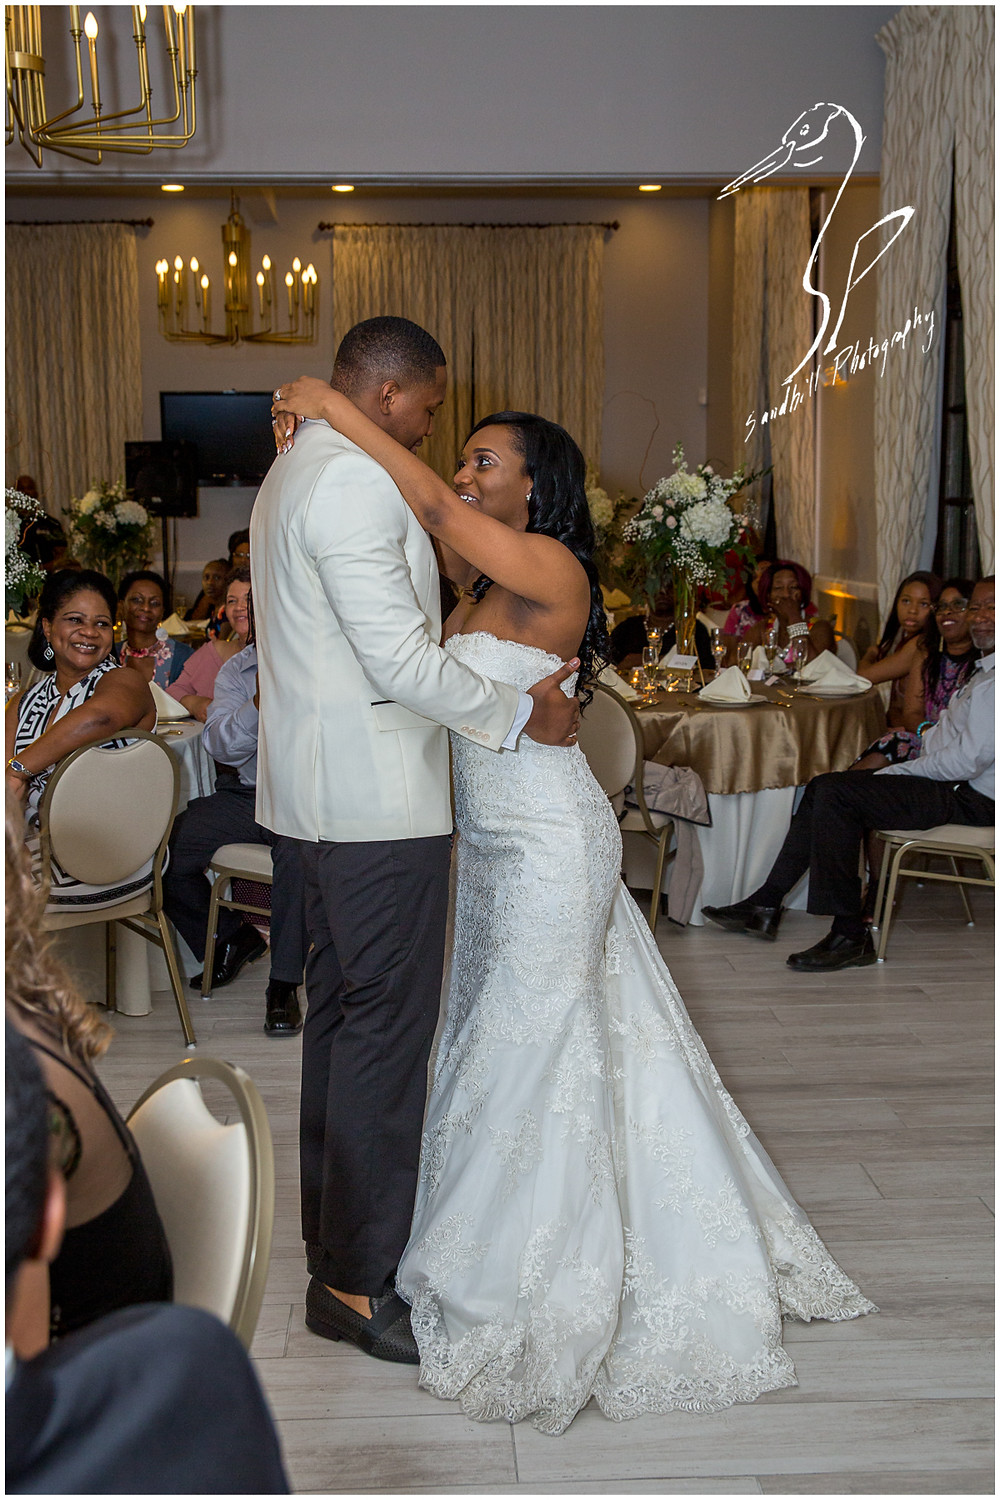 Bradenton Wedding Photographer, The bride and groom share their first dance at their reception at the Mirabay Club